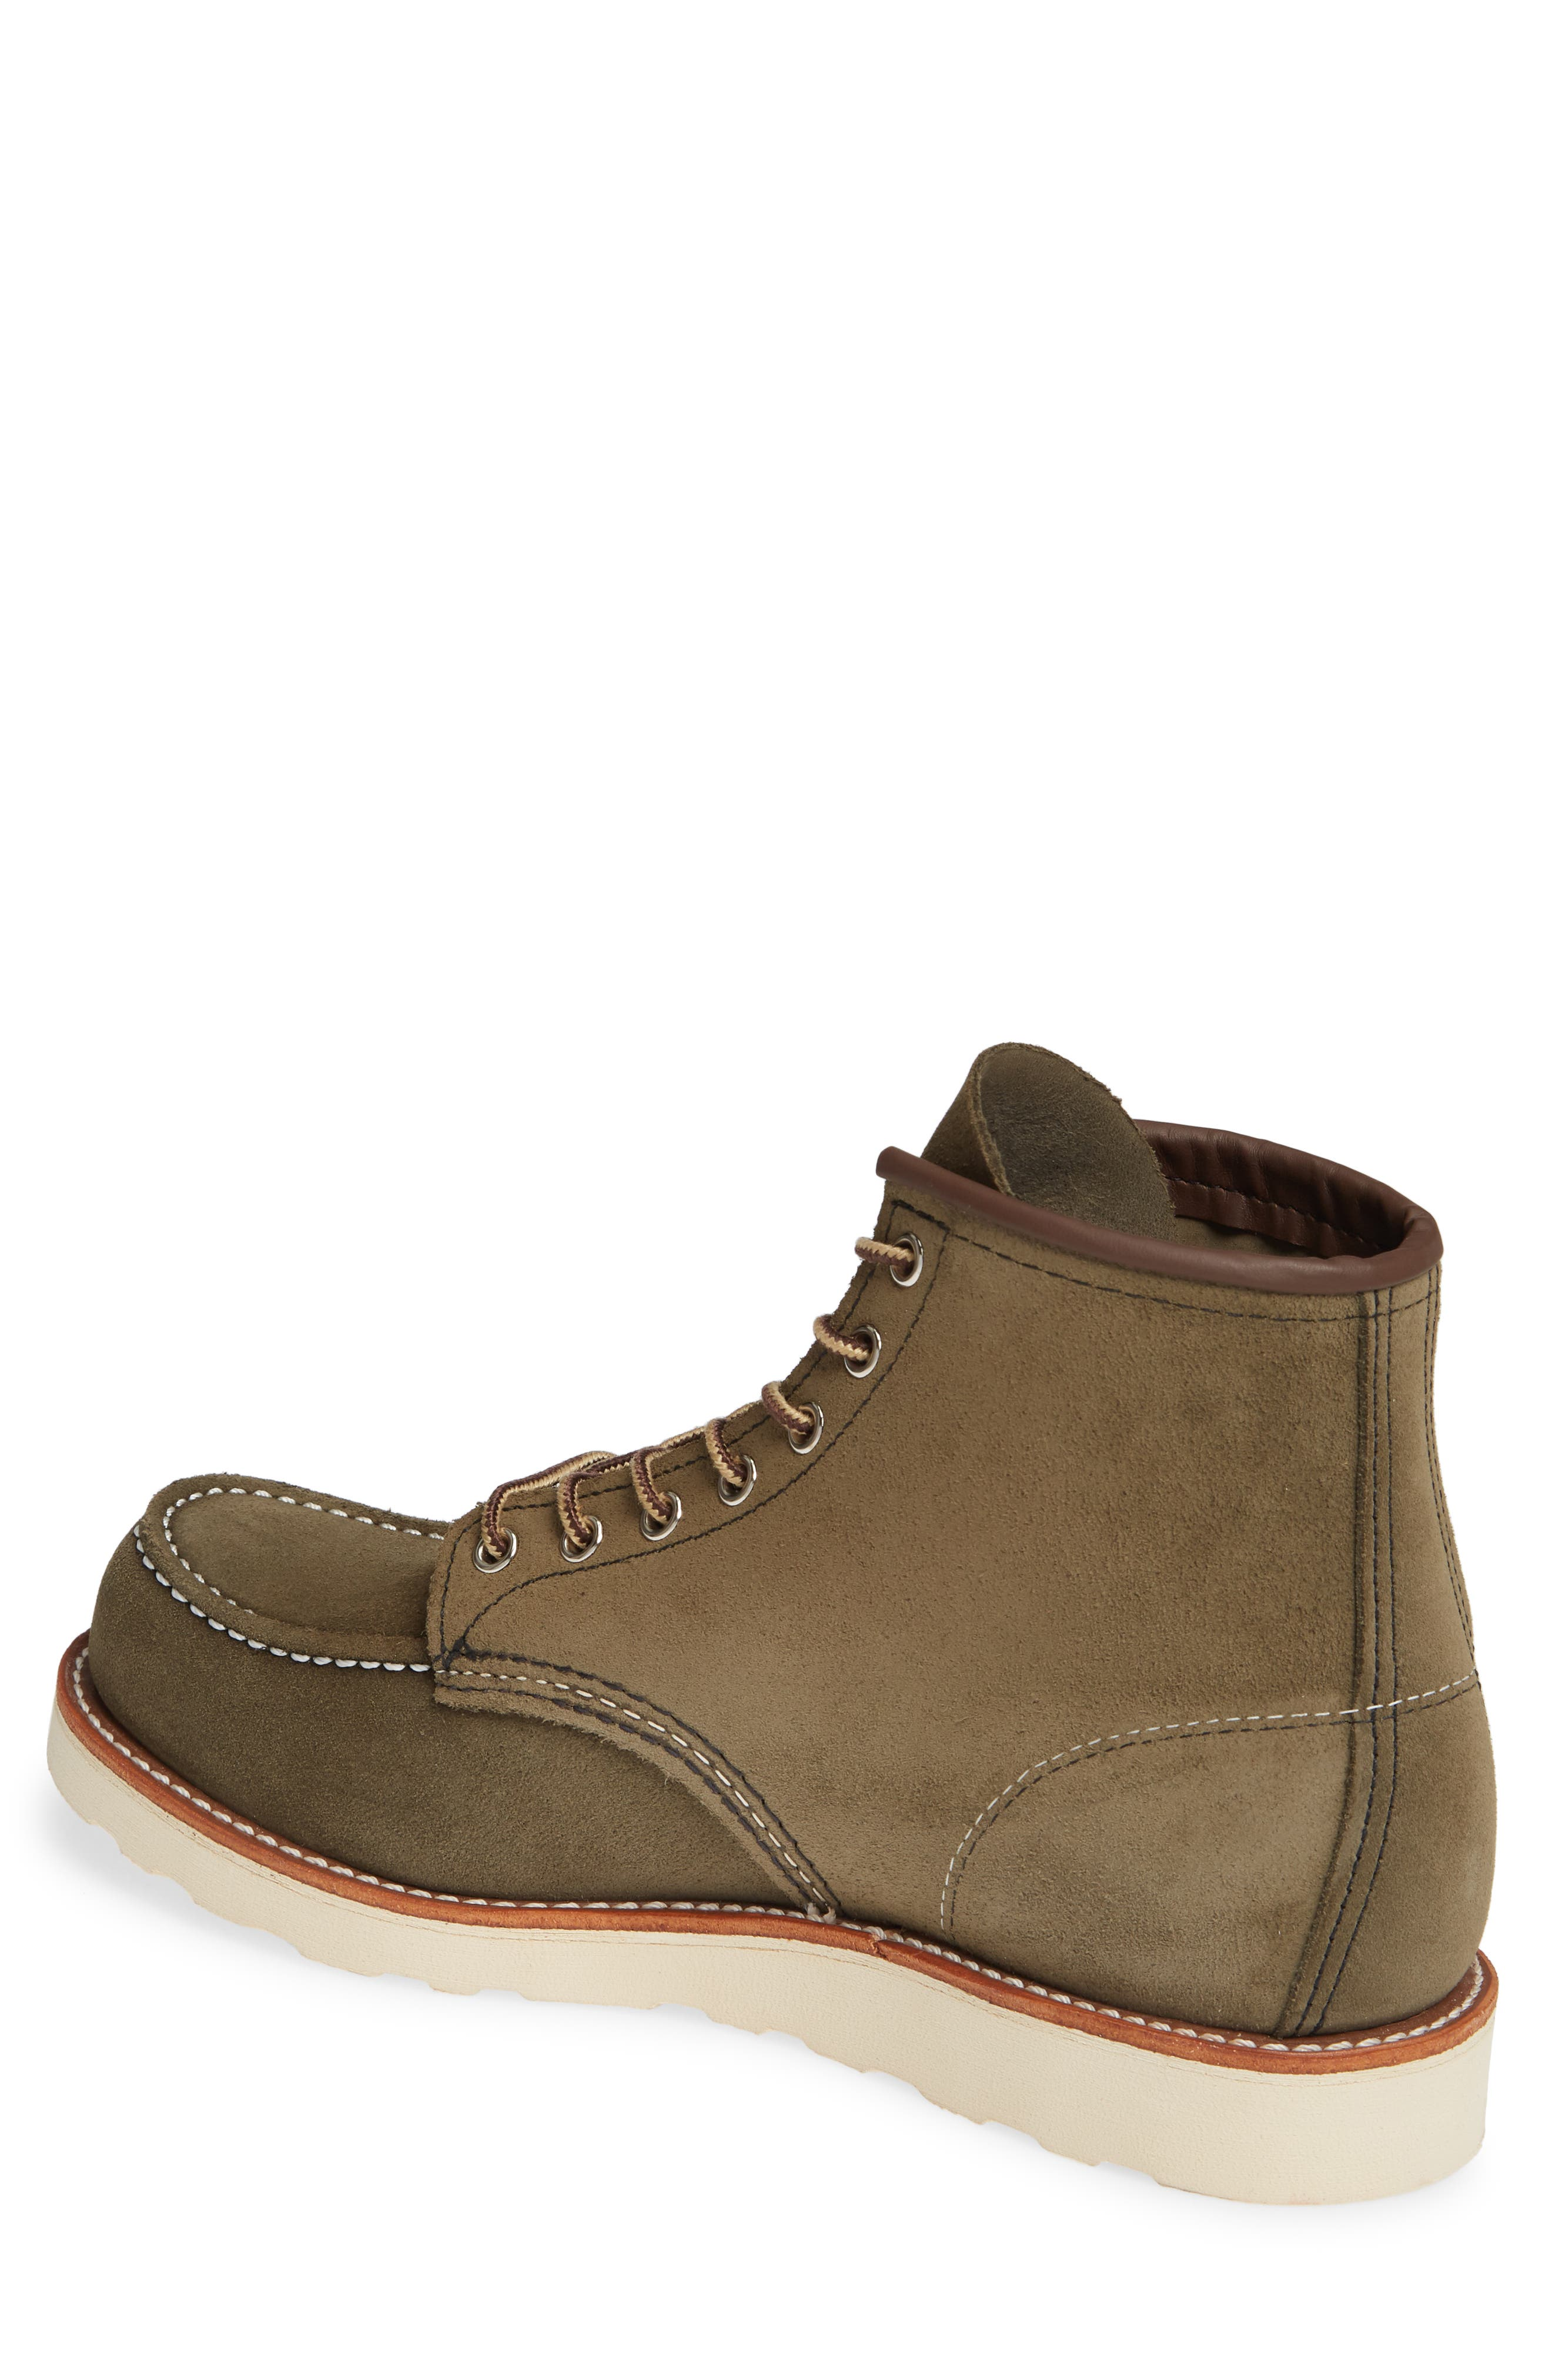 RED WING, 6 Inch Moc Toe Boot, Alternate thumbnail 2, color, LODEN ABILENE LEATHER